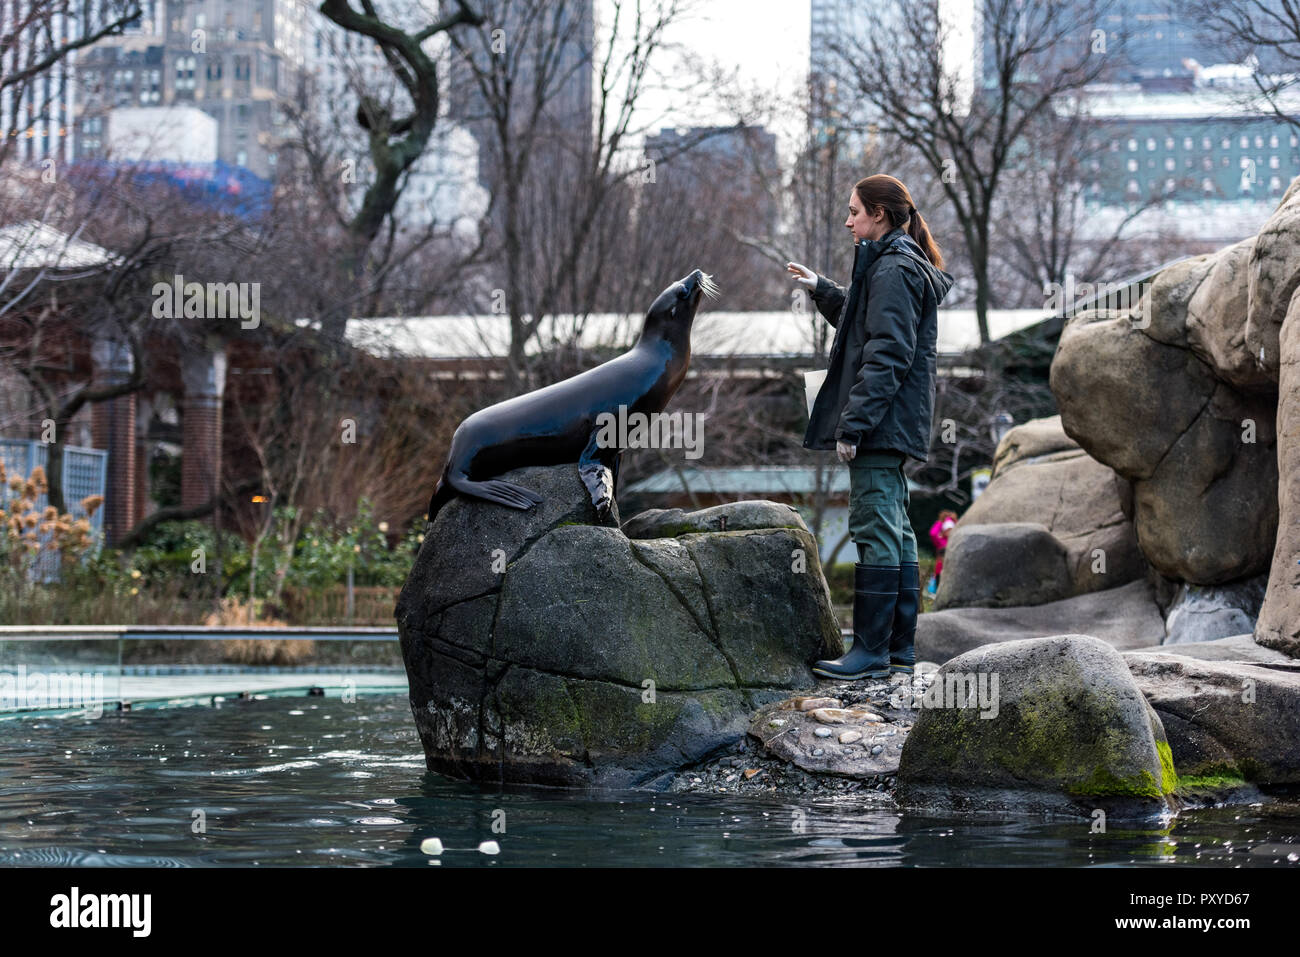 Sea lion feeding and training is part of animal enrichment program at Central Park Zoo in New York City. - Stock Image